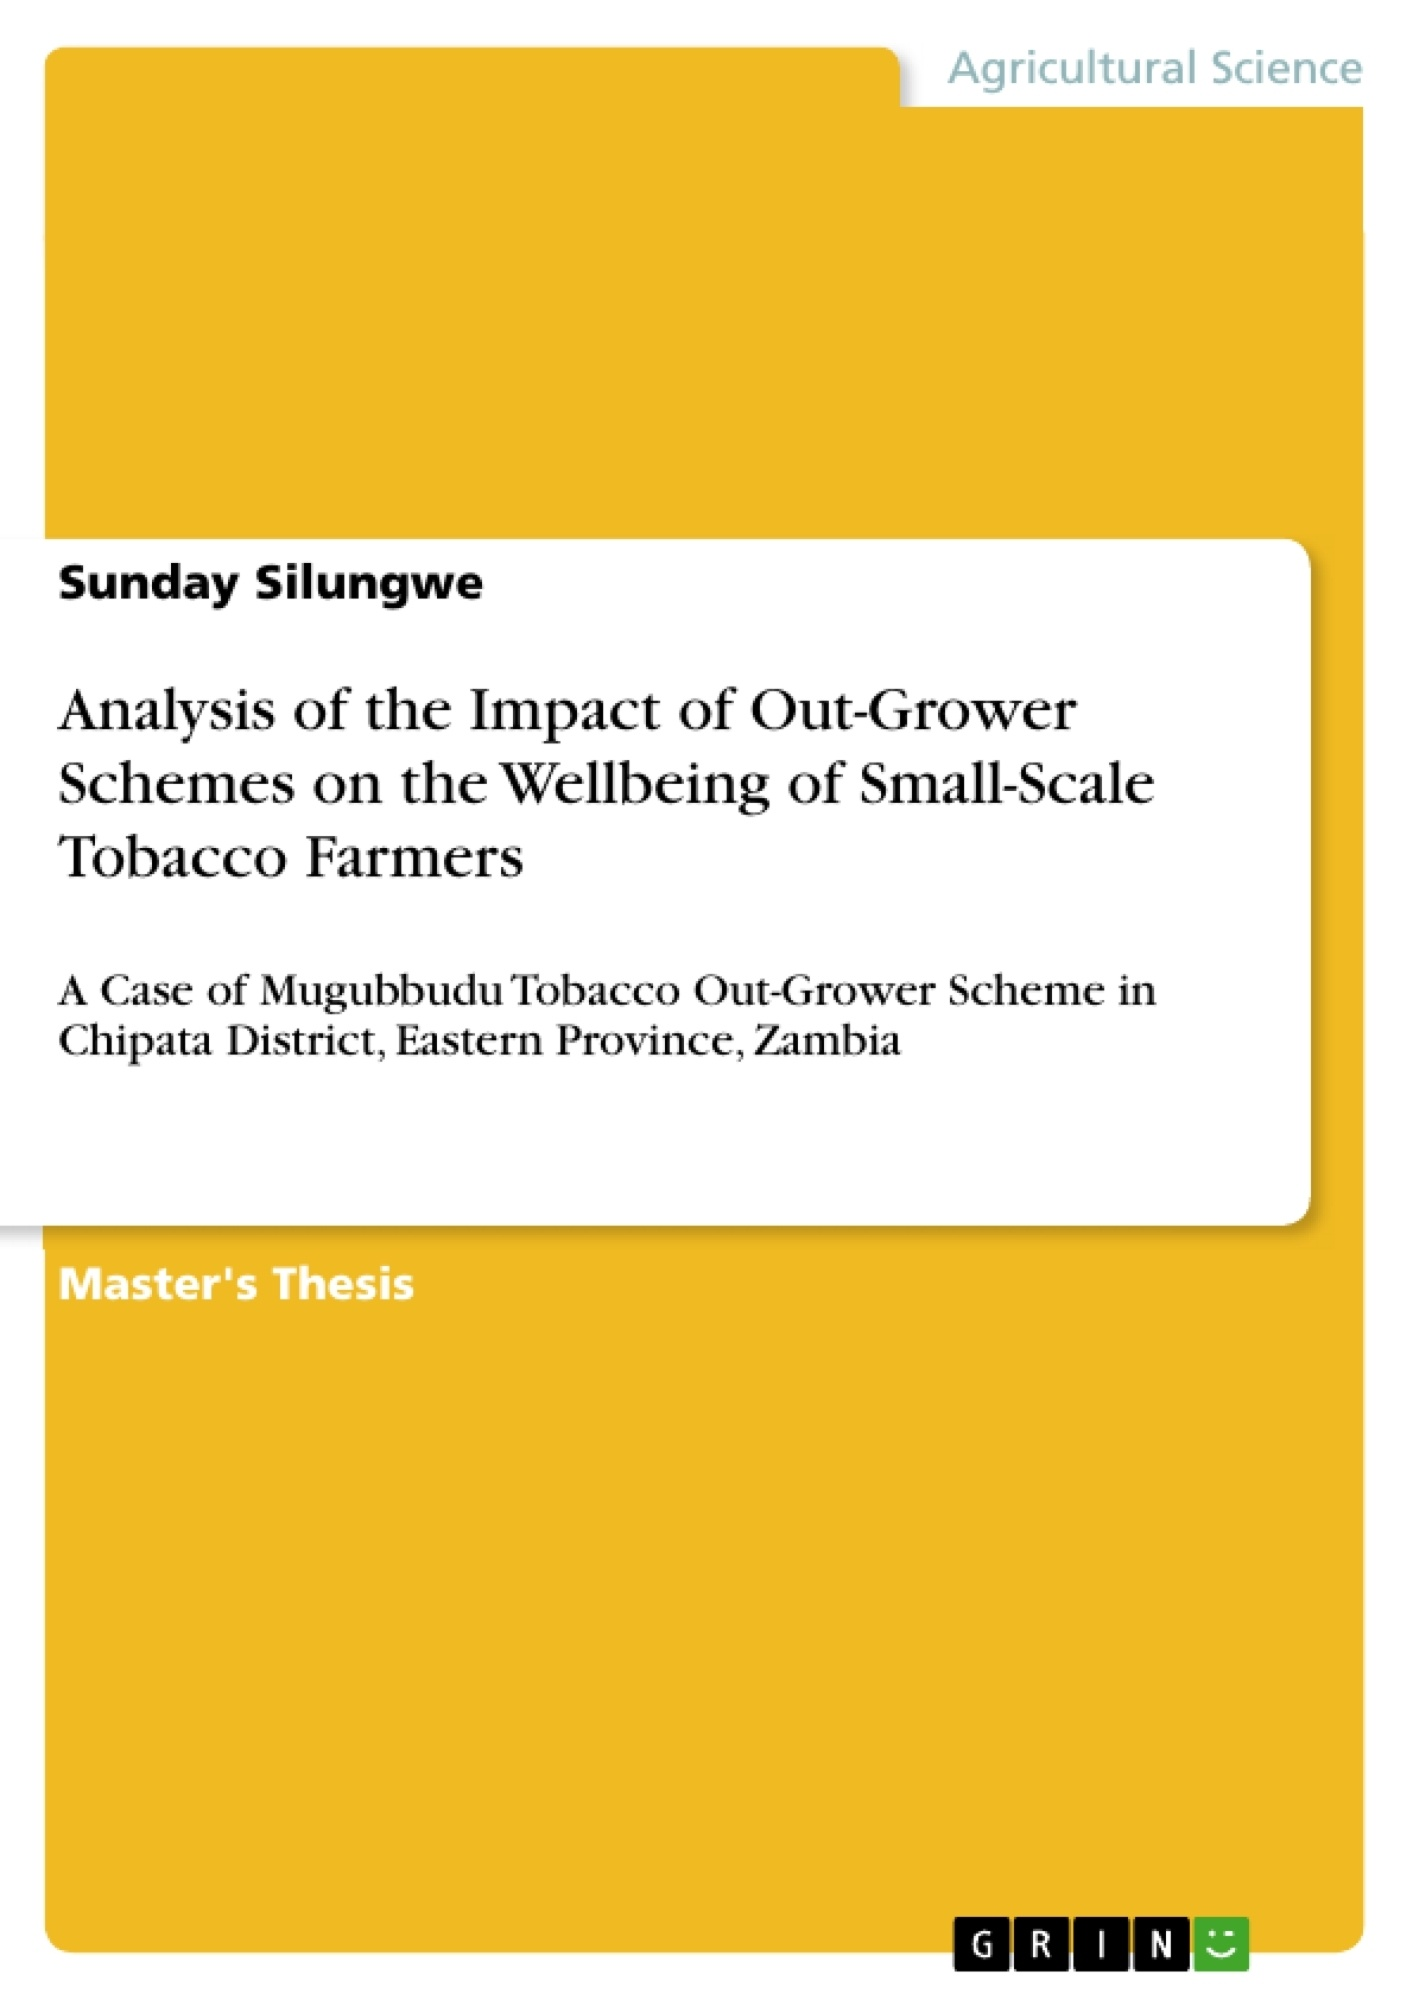 Title: Analysis of the Impact of Out-Grower Schemes on the Wellbeing of Small-Scale Tobacco Farmers